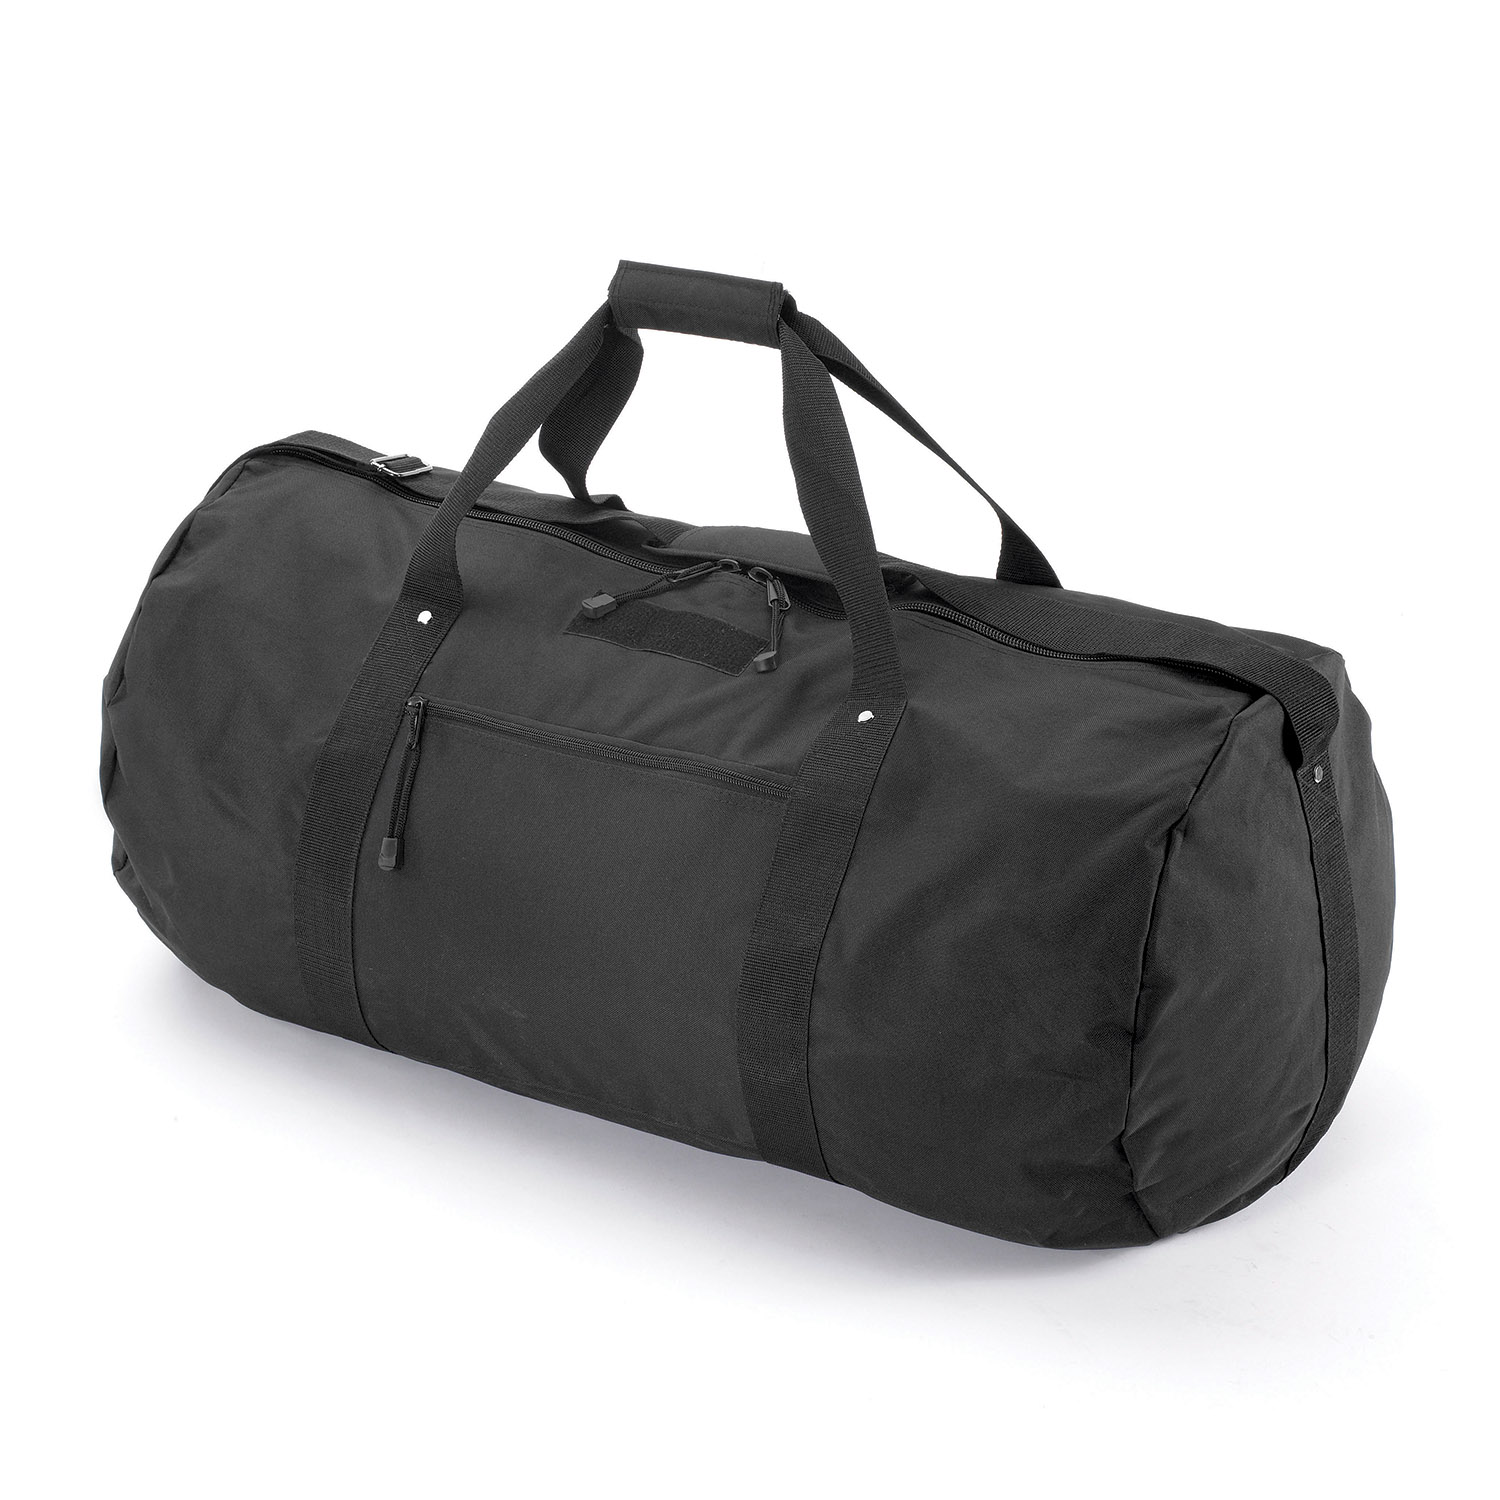 LawPro Large Duffle Bag